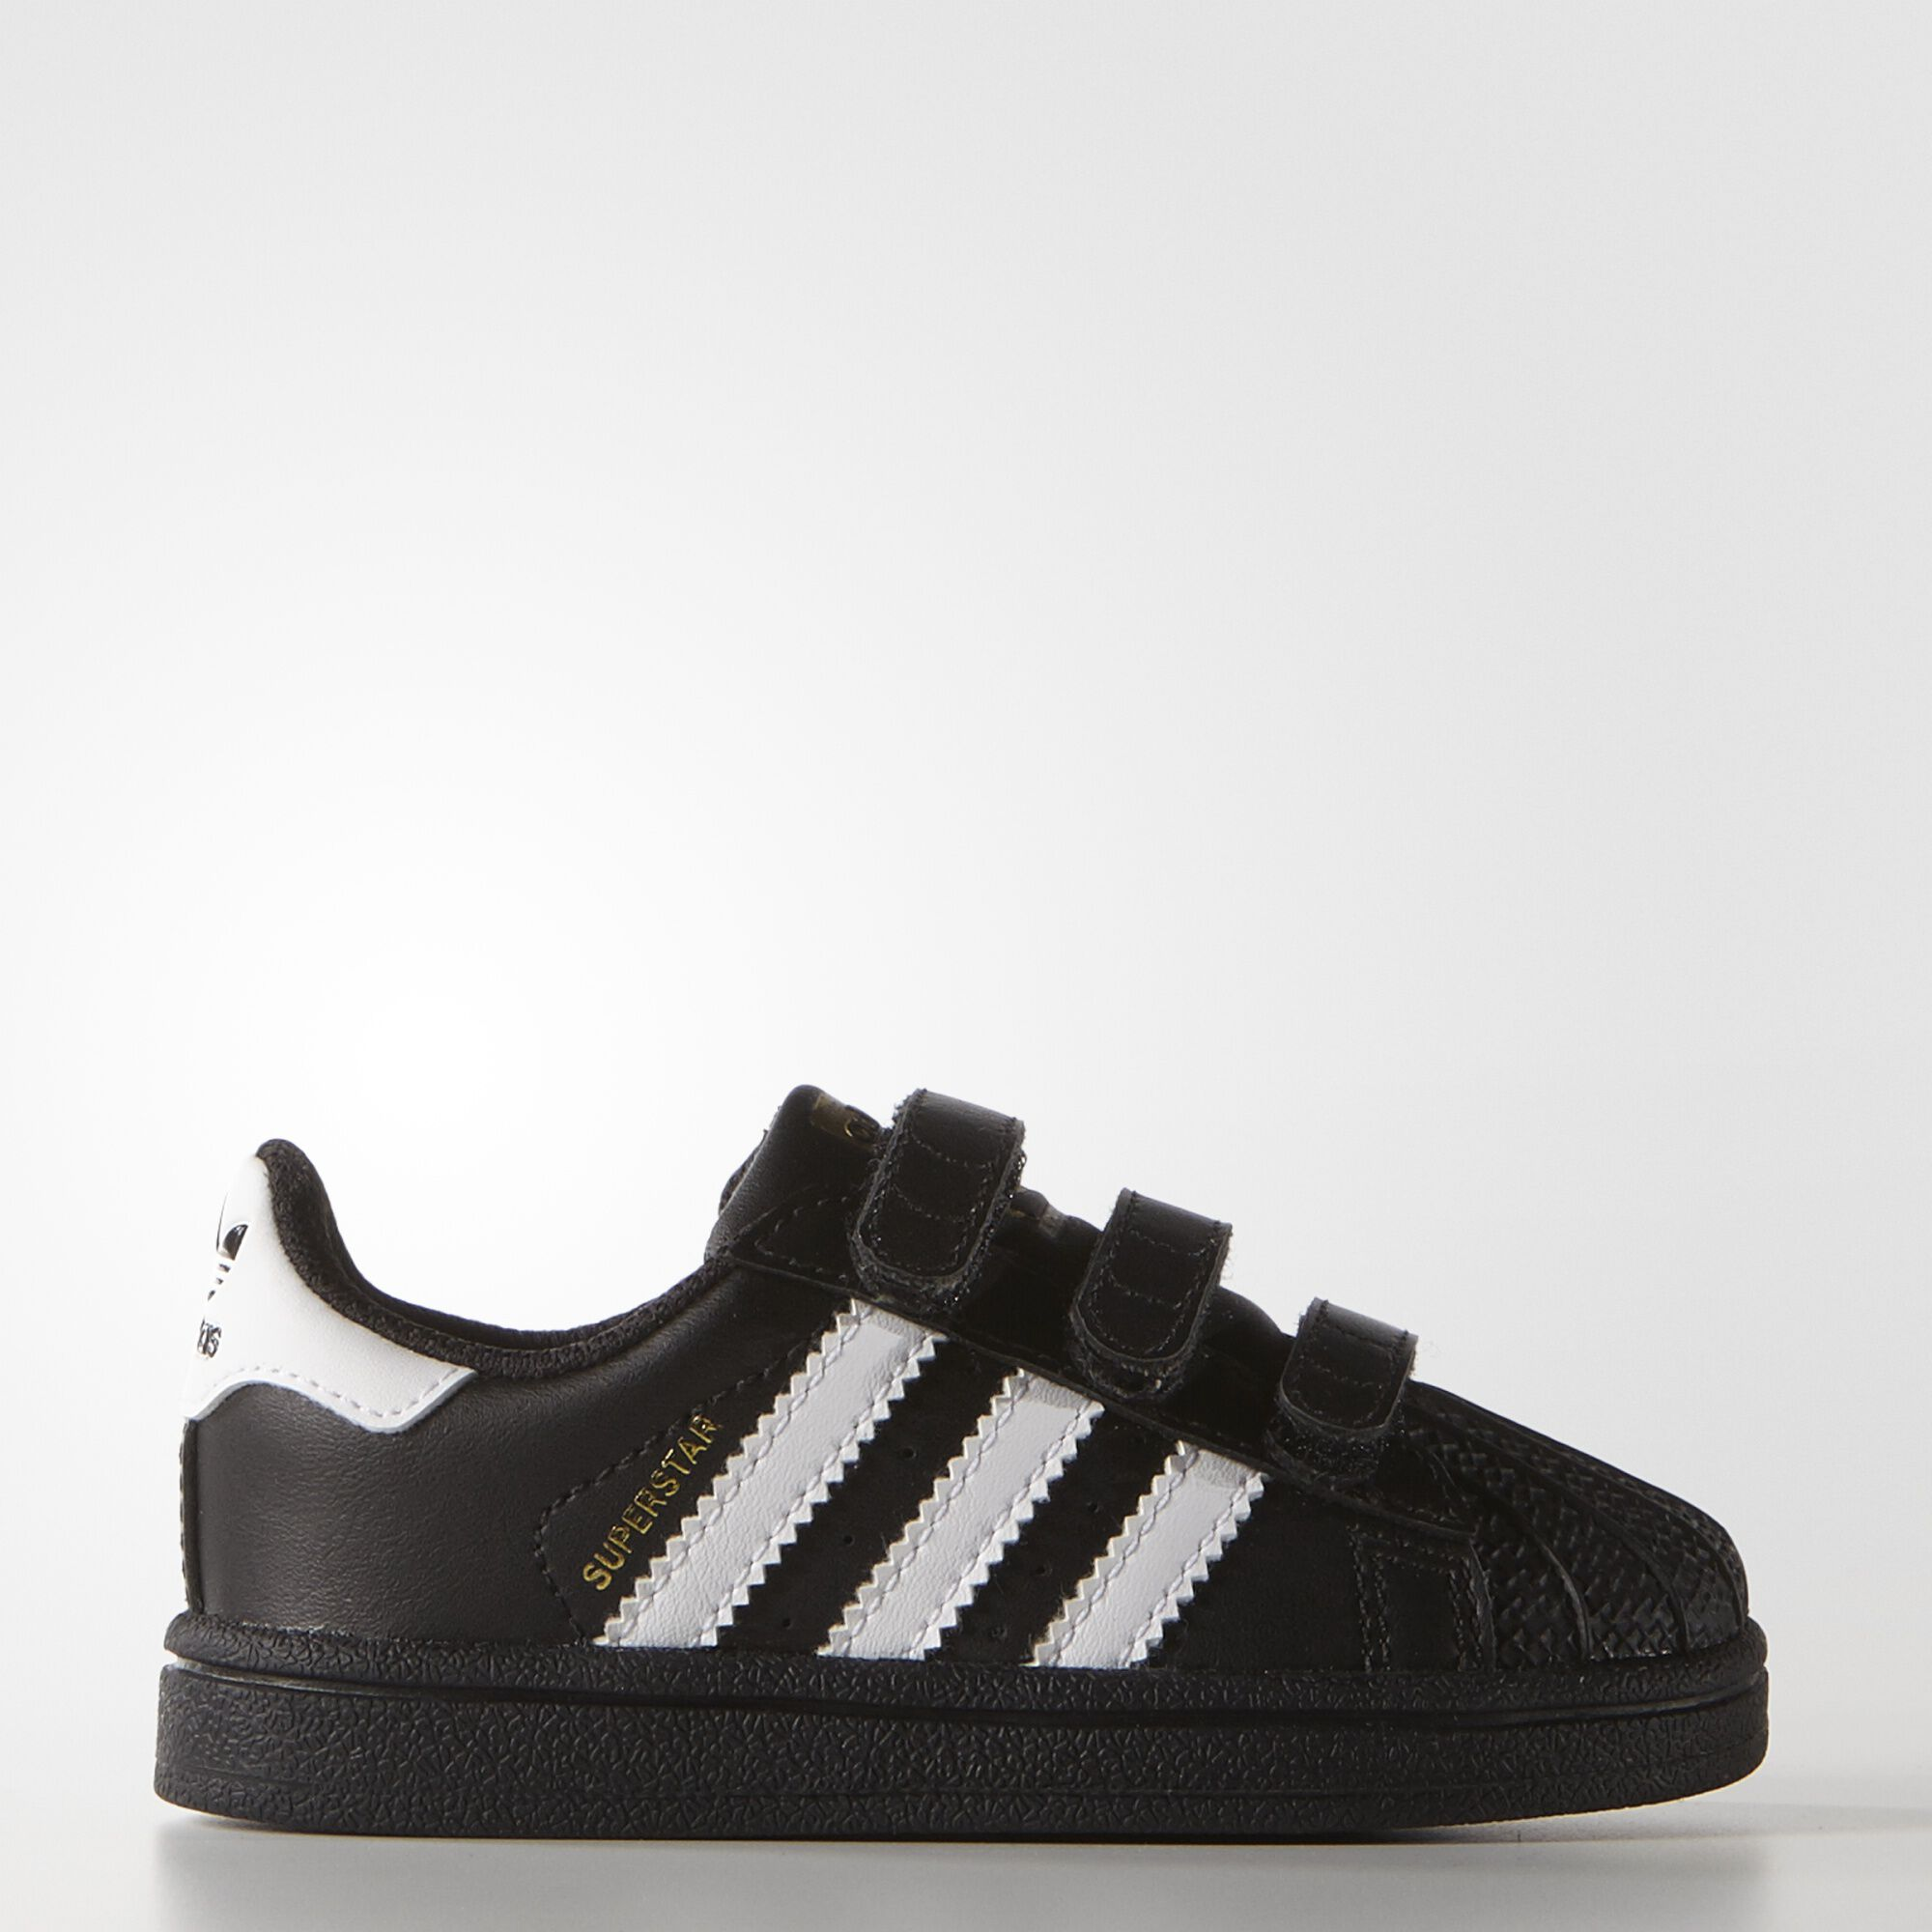 Adidas All Star Black